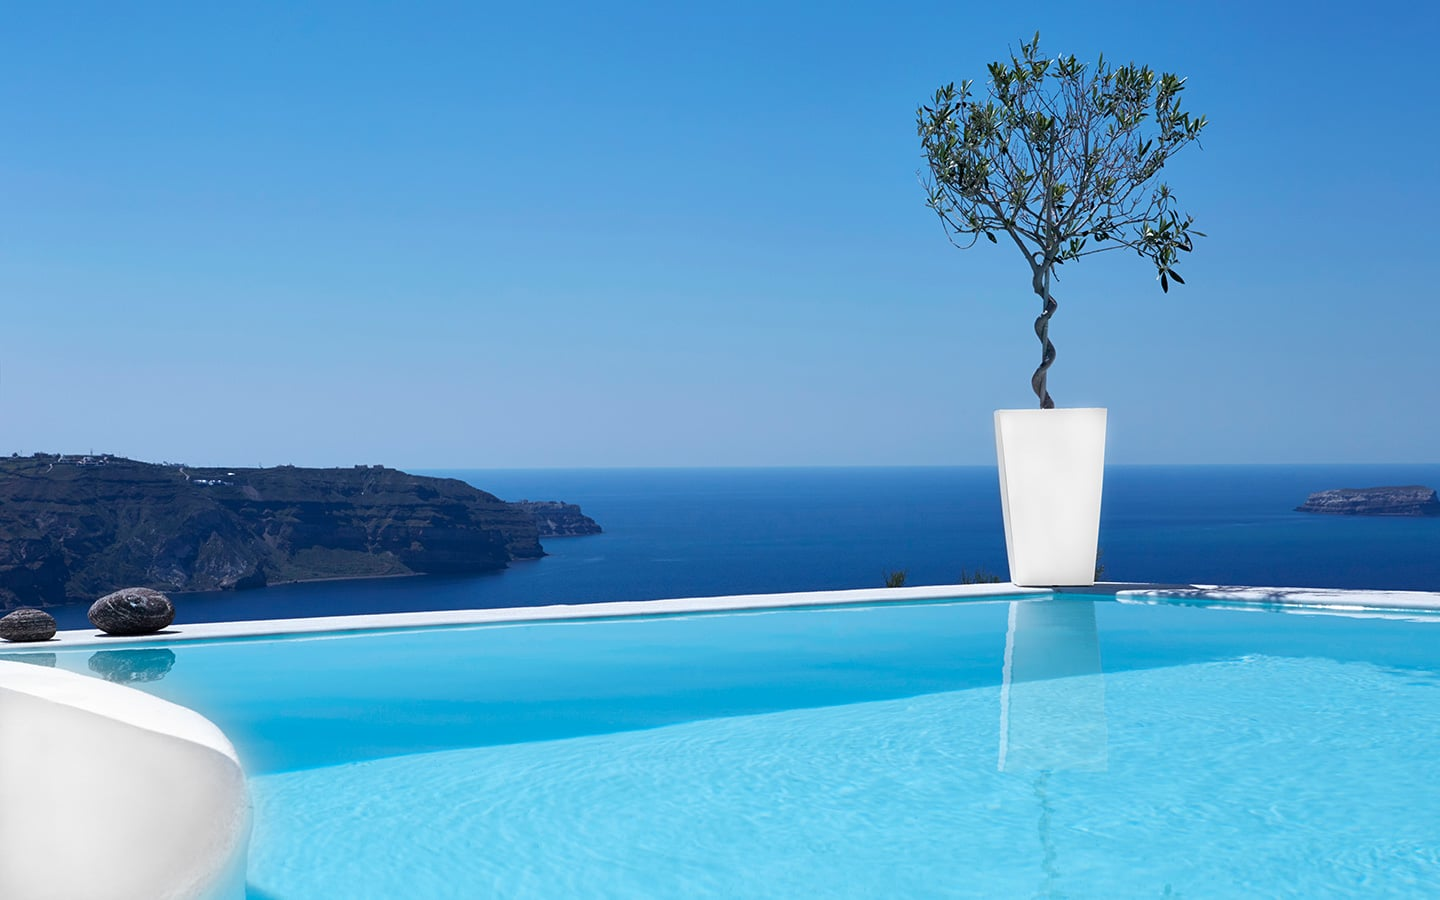 Crystal clear infinity pool overlooking the sea in Athermi Suites Santorini.